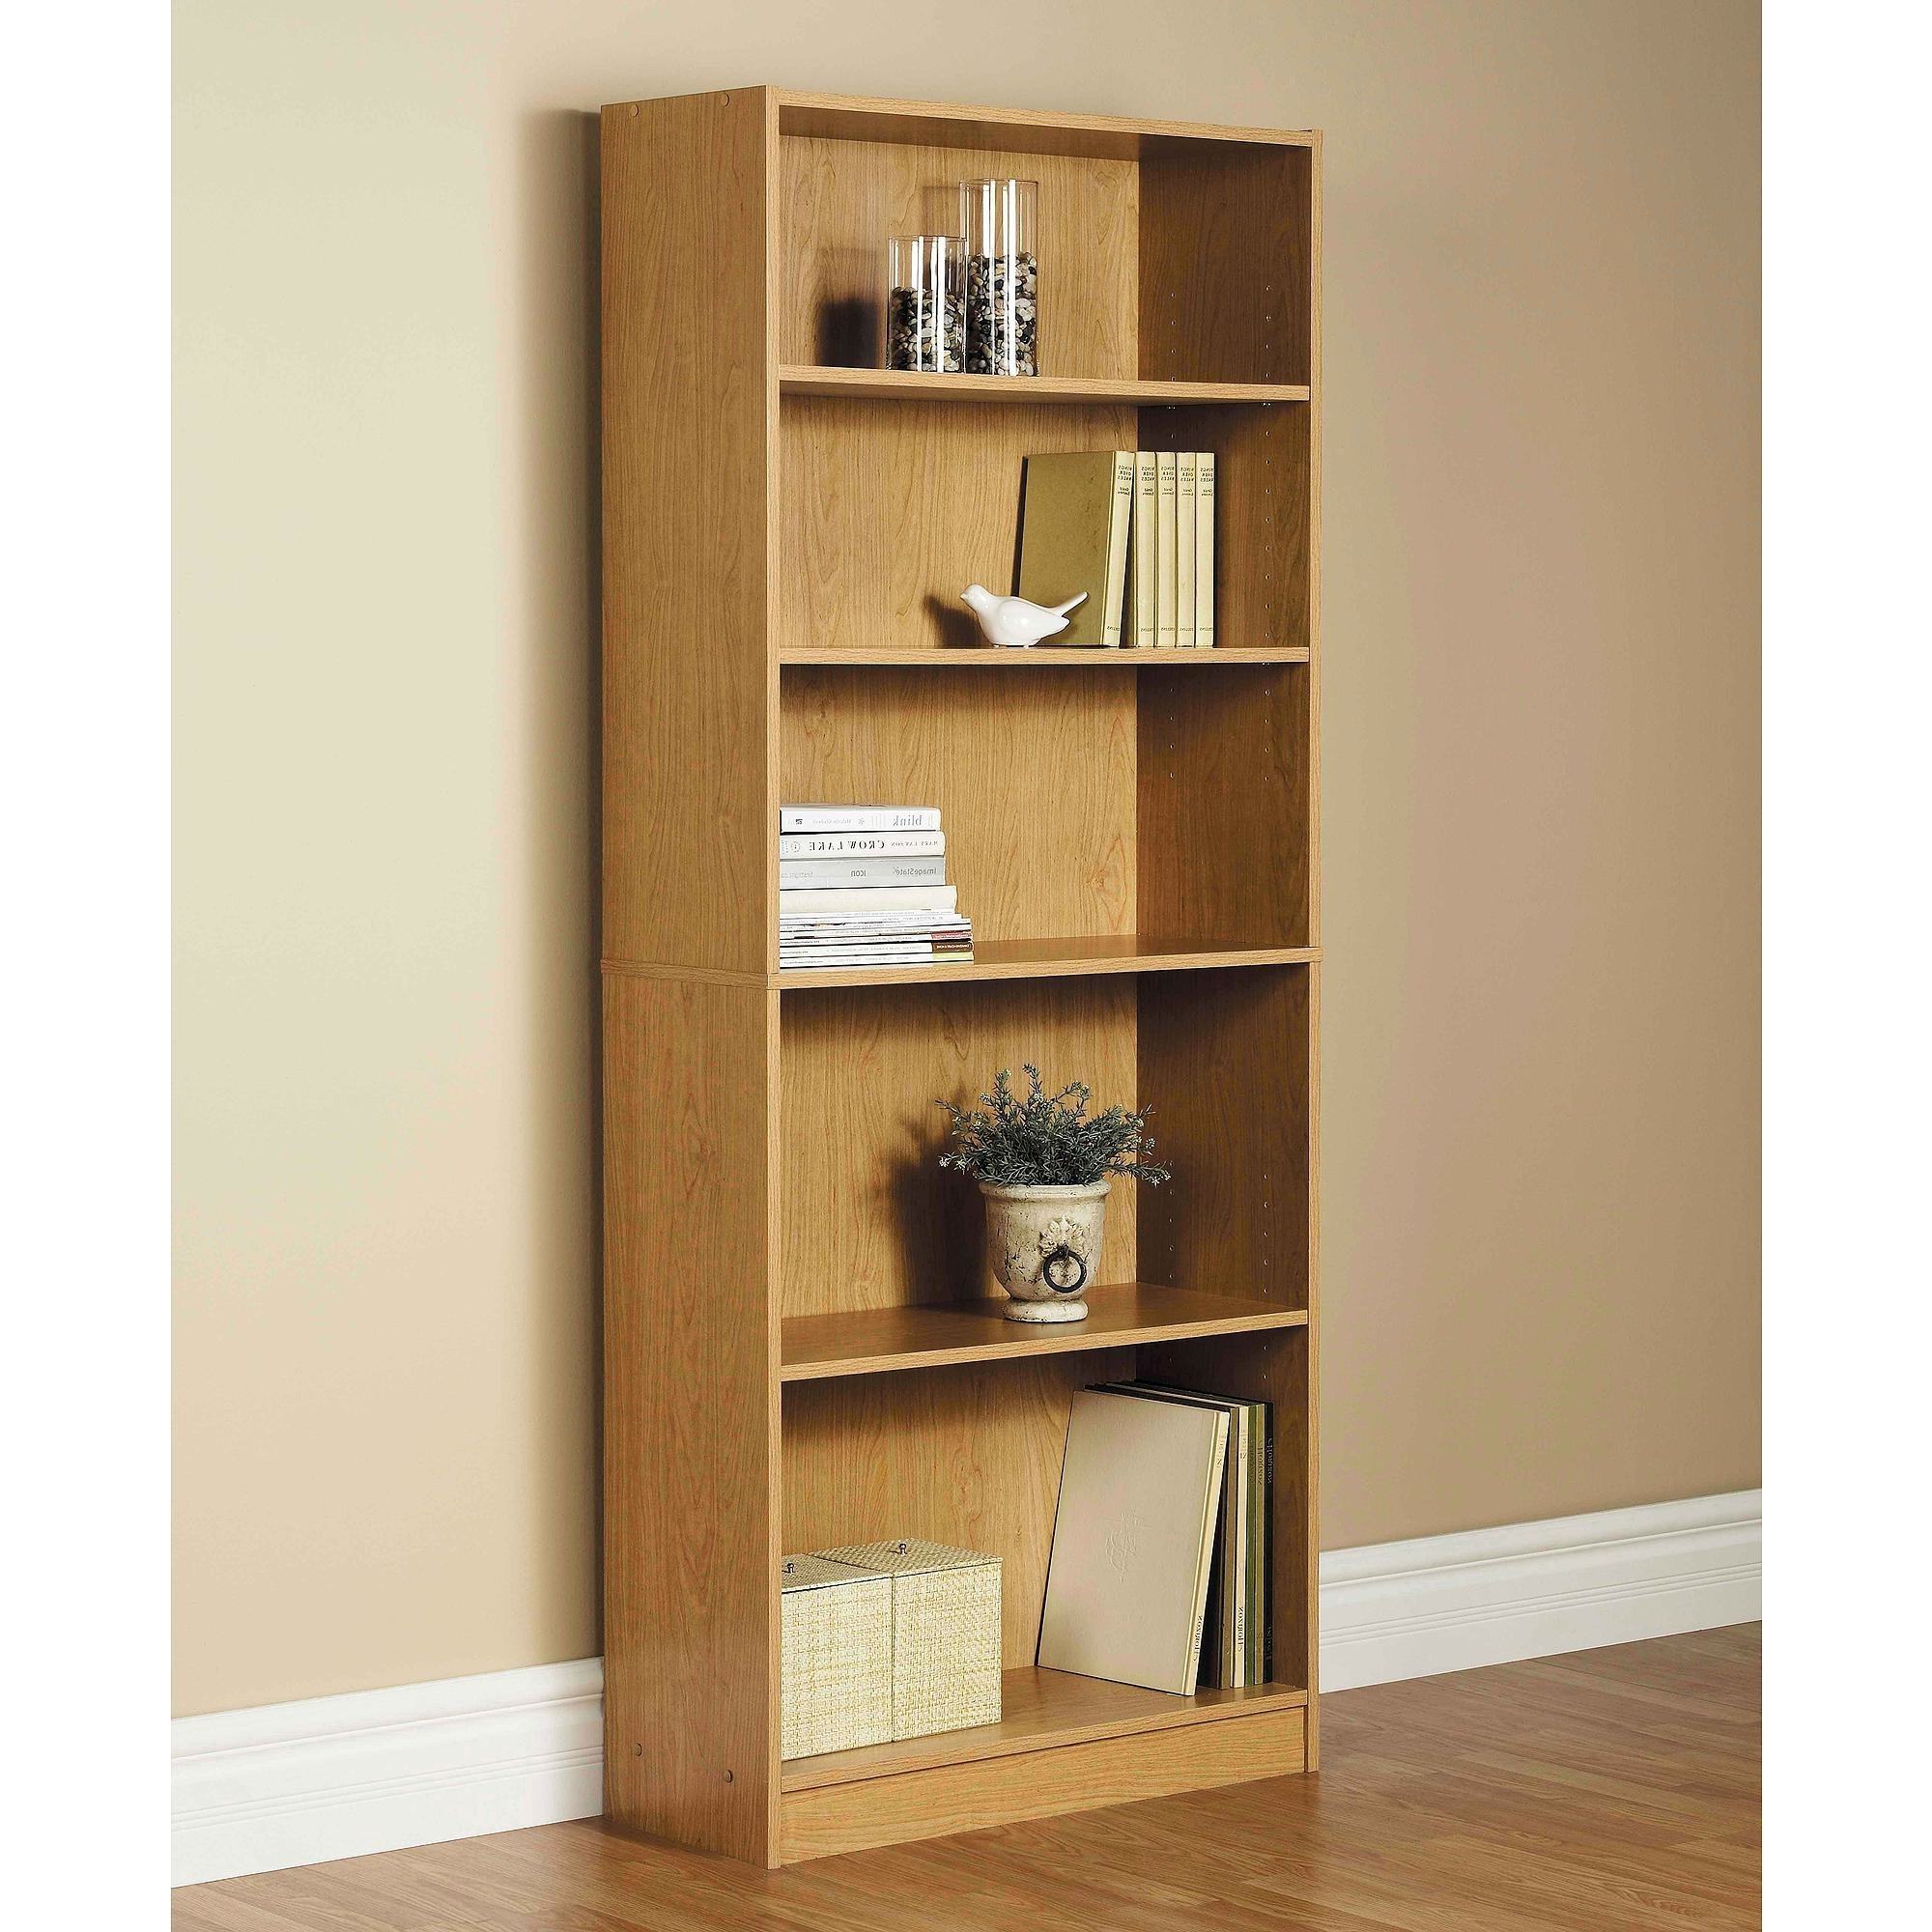 Furniture Home: Bookcases Office Furniture Walmart Com Orion Wide For Favorite Ashley Furniture Bookcases (View 12 of 15)